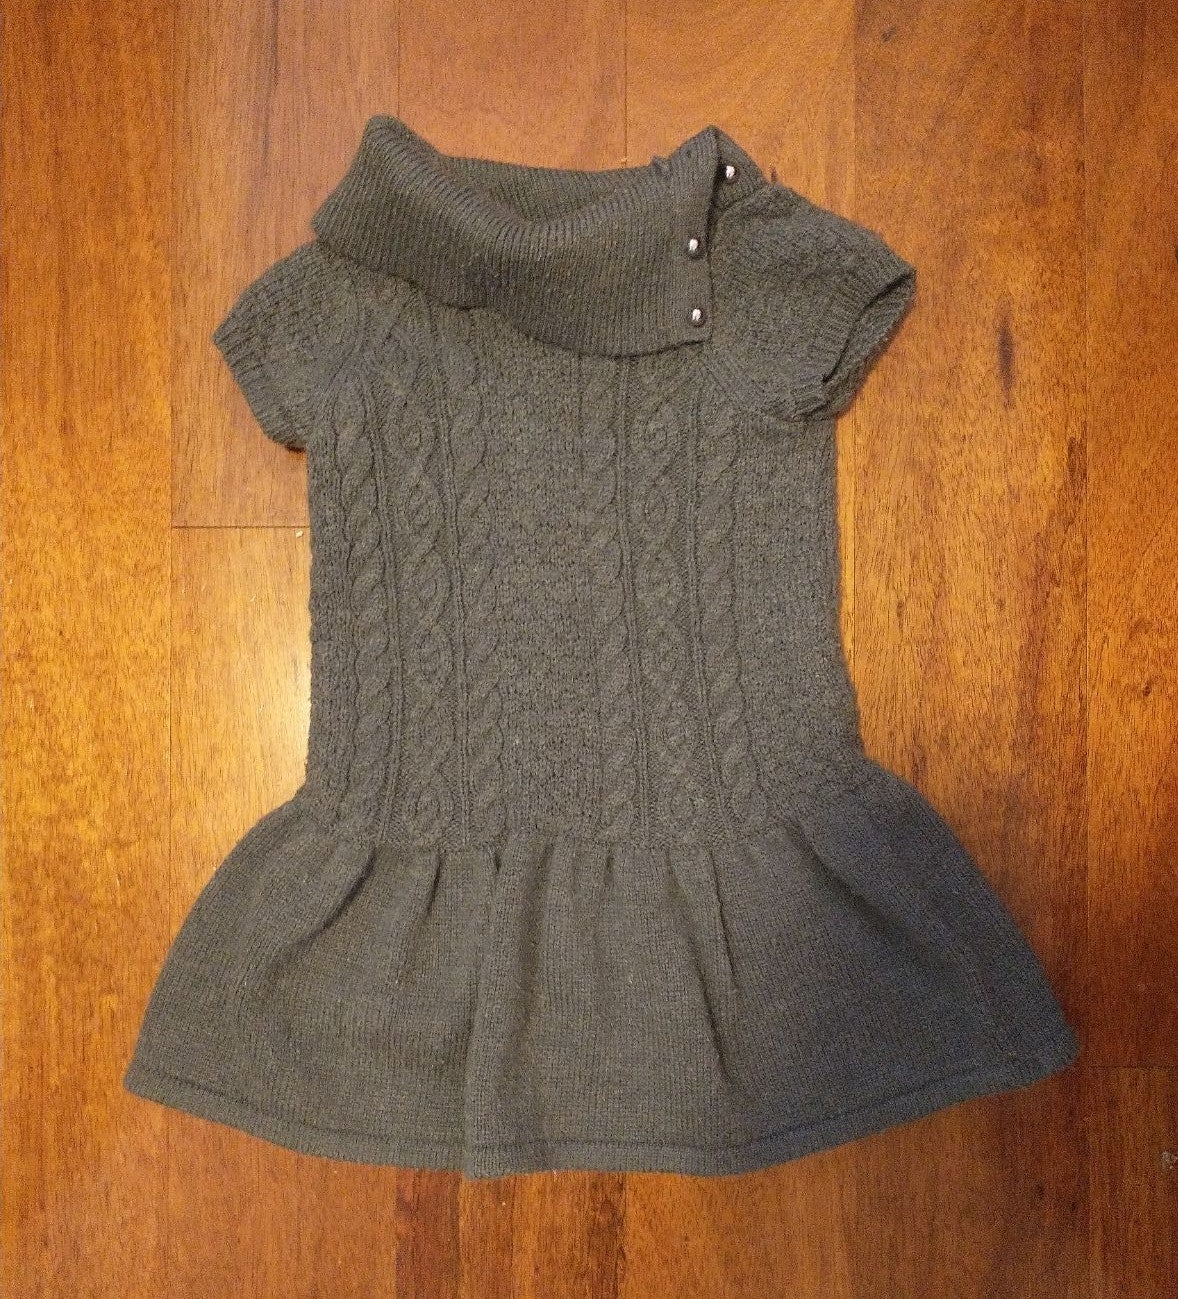 Janie and jack knitted dress 3t